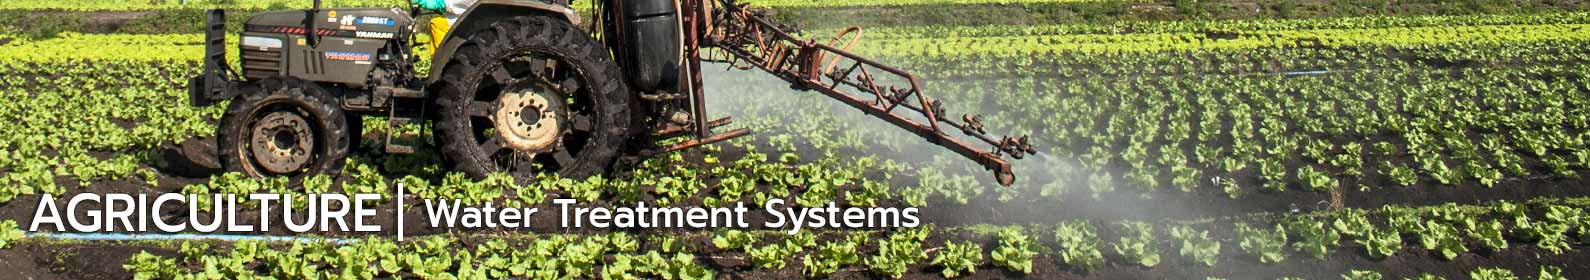 Agriculture water treatment systems